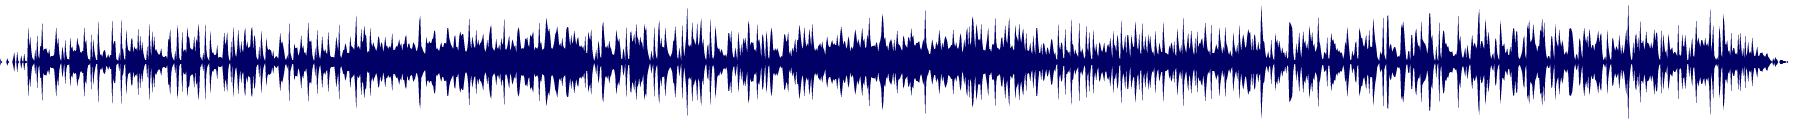 waveform of track #86829